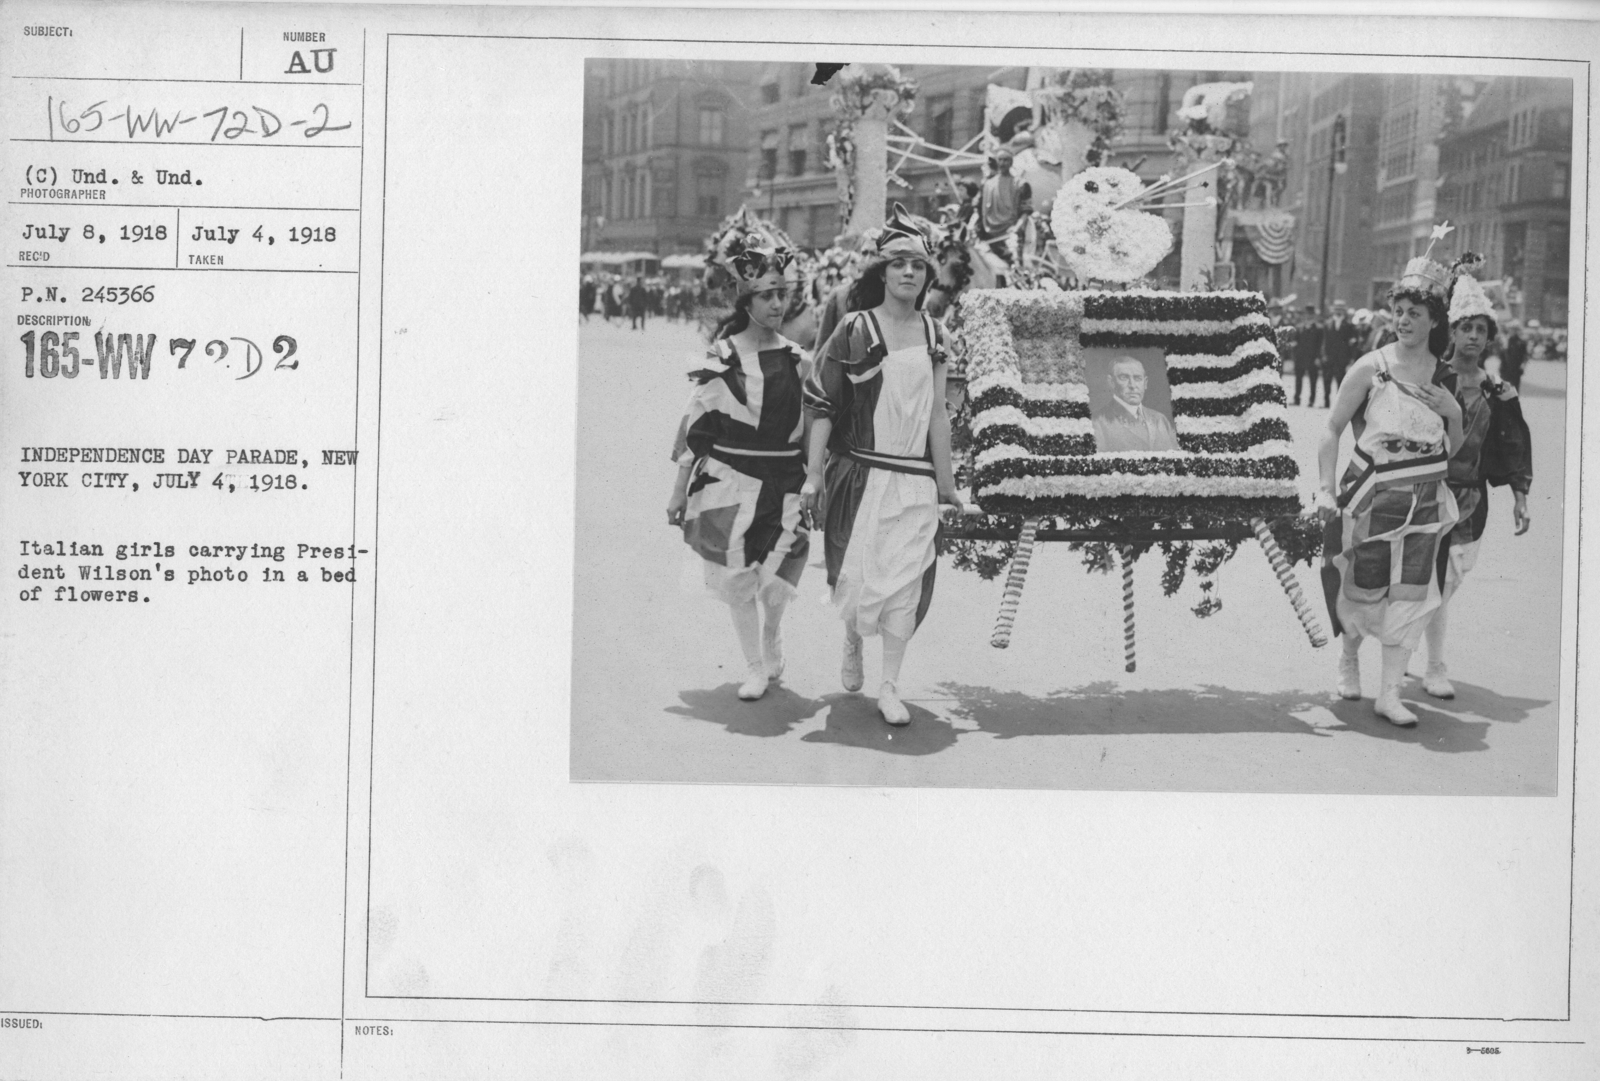 Ceremonies - Independence Day, 1918 - Independence Day Parade, New York City, July 4, 1918. Italian girls carrying President Wilson's photo in a bed of flowers